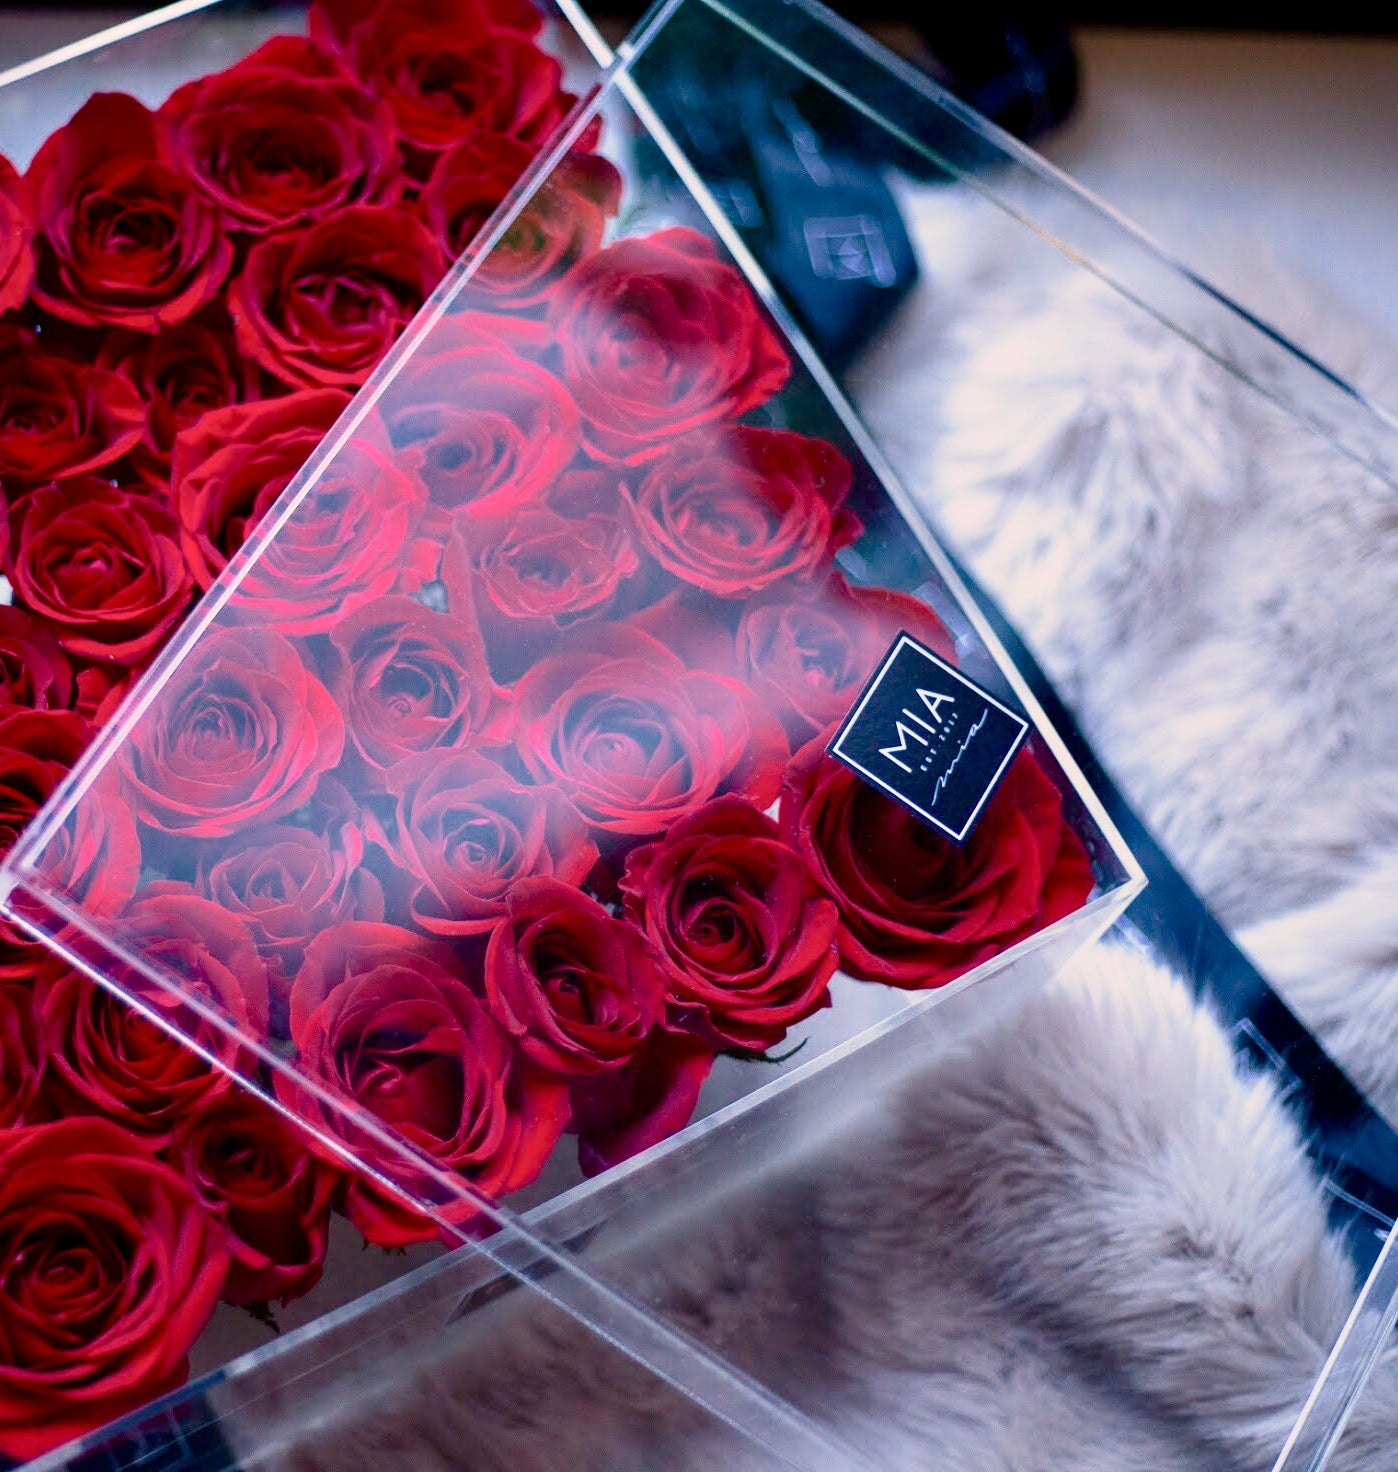 acrylic clear luxury red rose box toronto